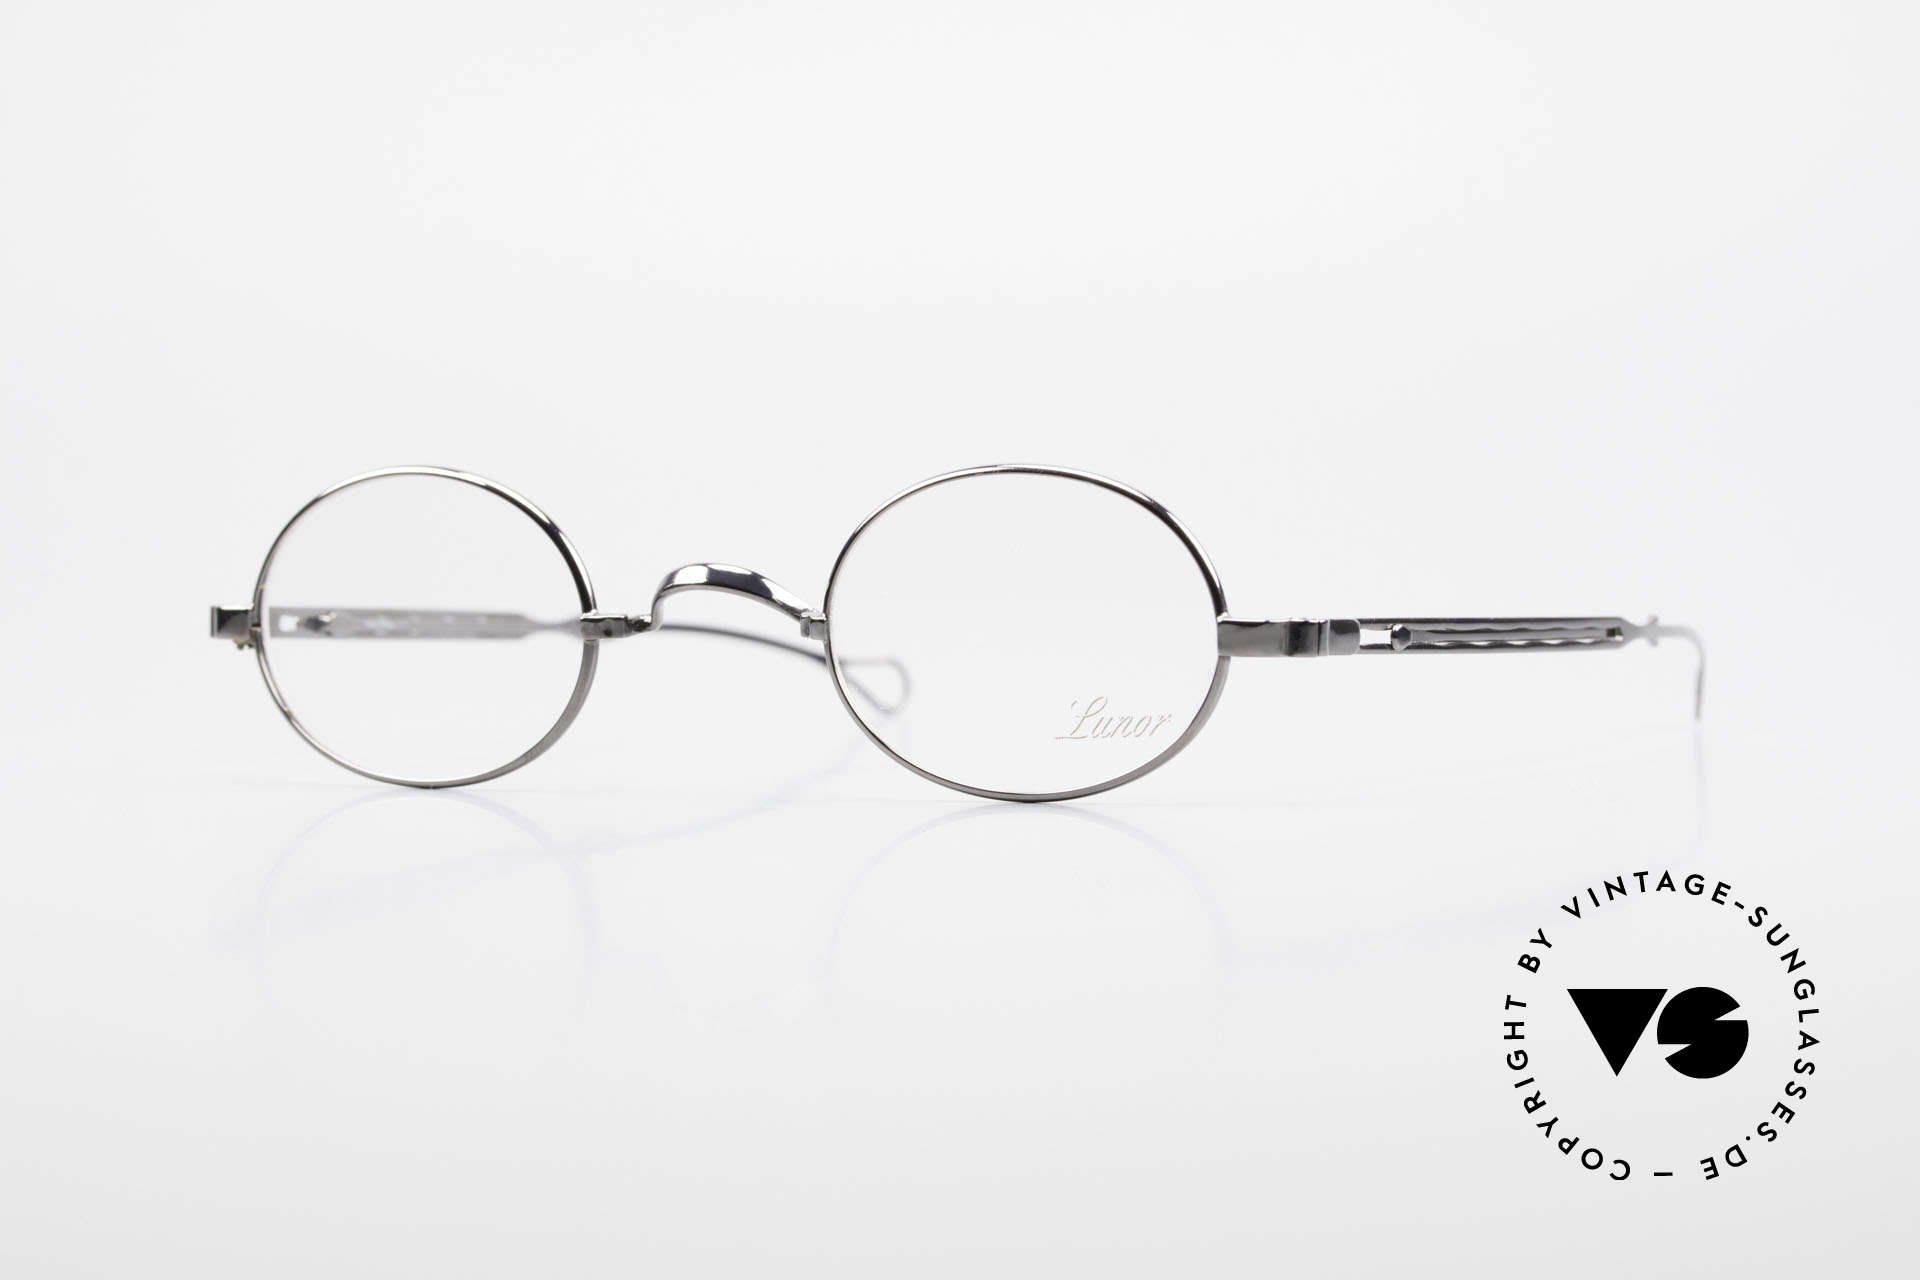 """Lunor I 22 Telescopic Oval Frame Extendable Arms, Lunor: shortcut for French """"Lunette d'Or"""" (gold glasses), Made for Men and Women"""